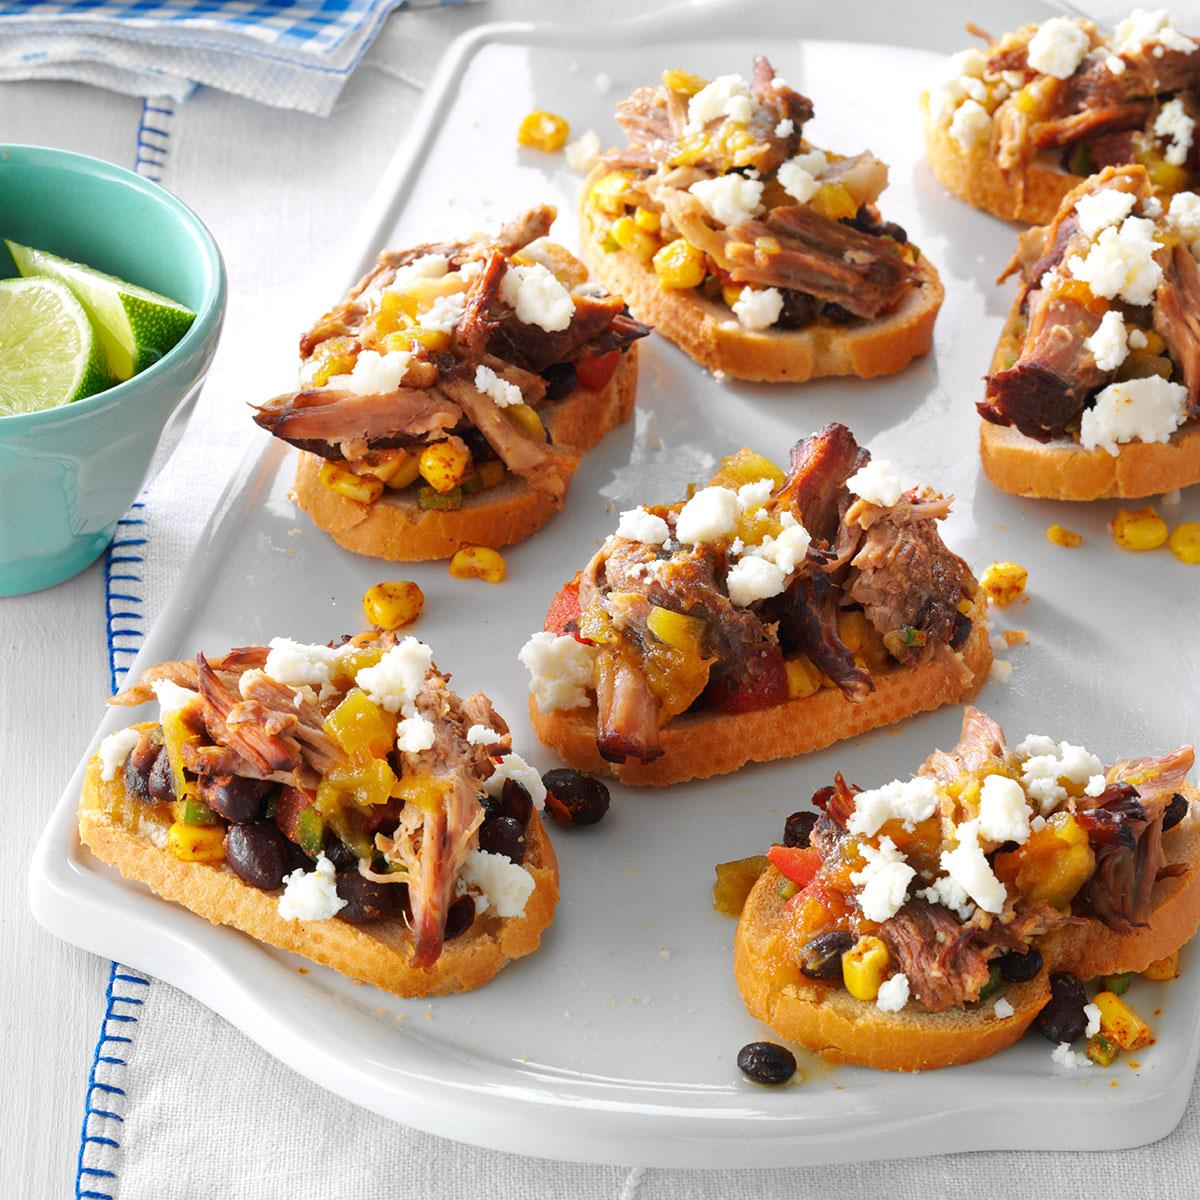 Party Finger Food Ideas Recipes: Southwestern Pulled Pork Crostini Recipe